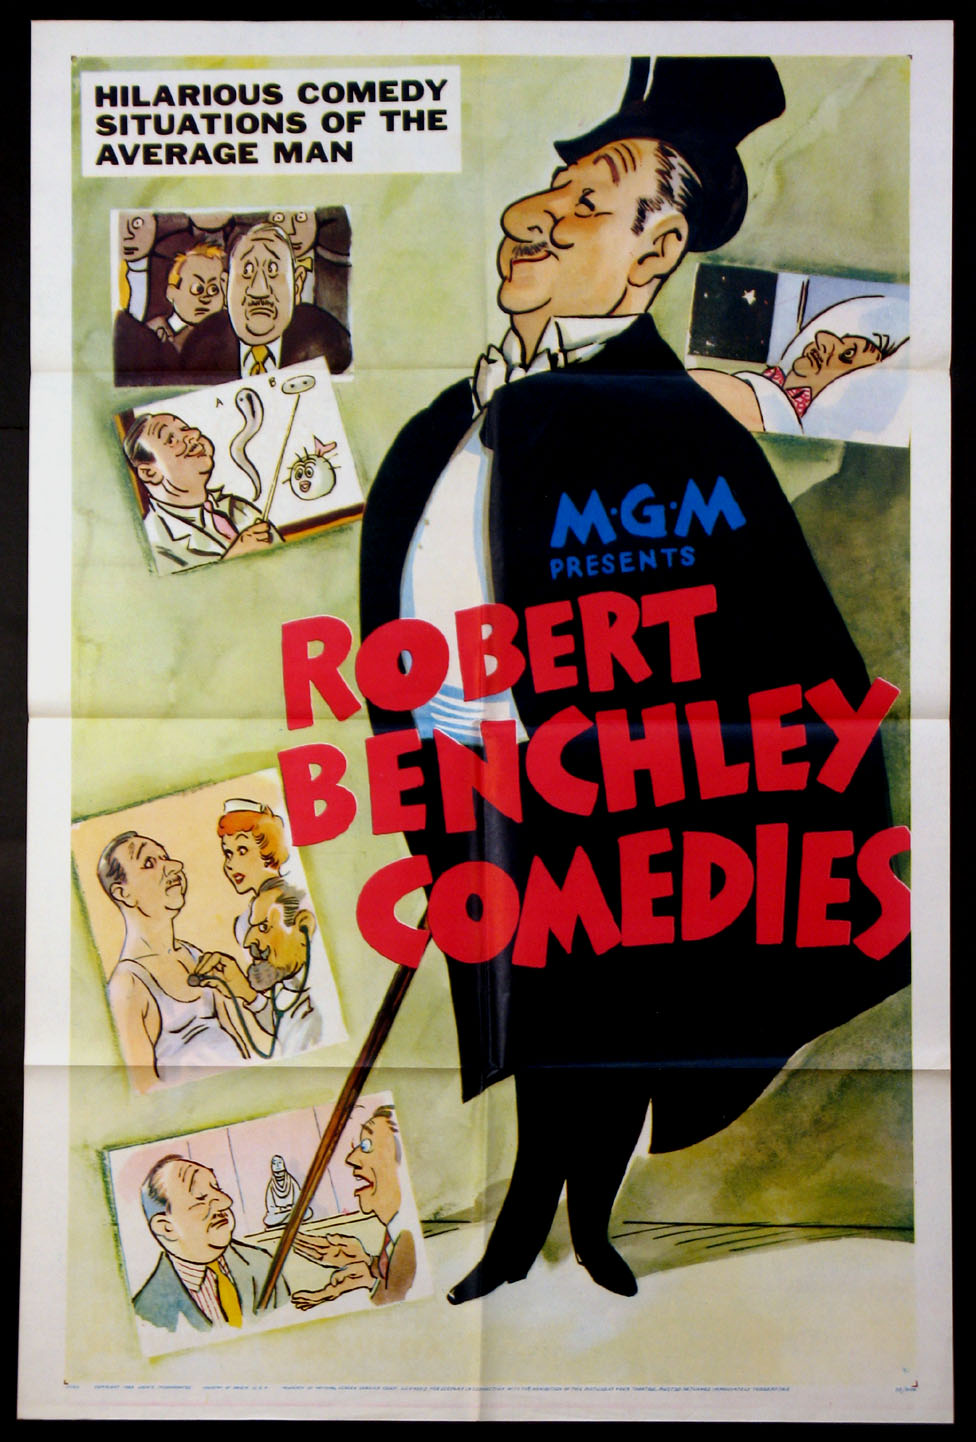 ROBERT BENCHLEY COMEDIES @ FilmPosters.com